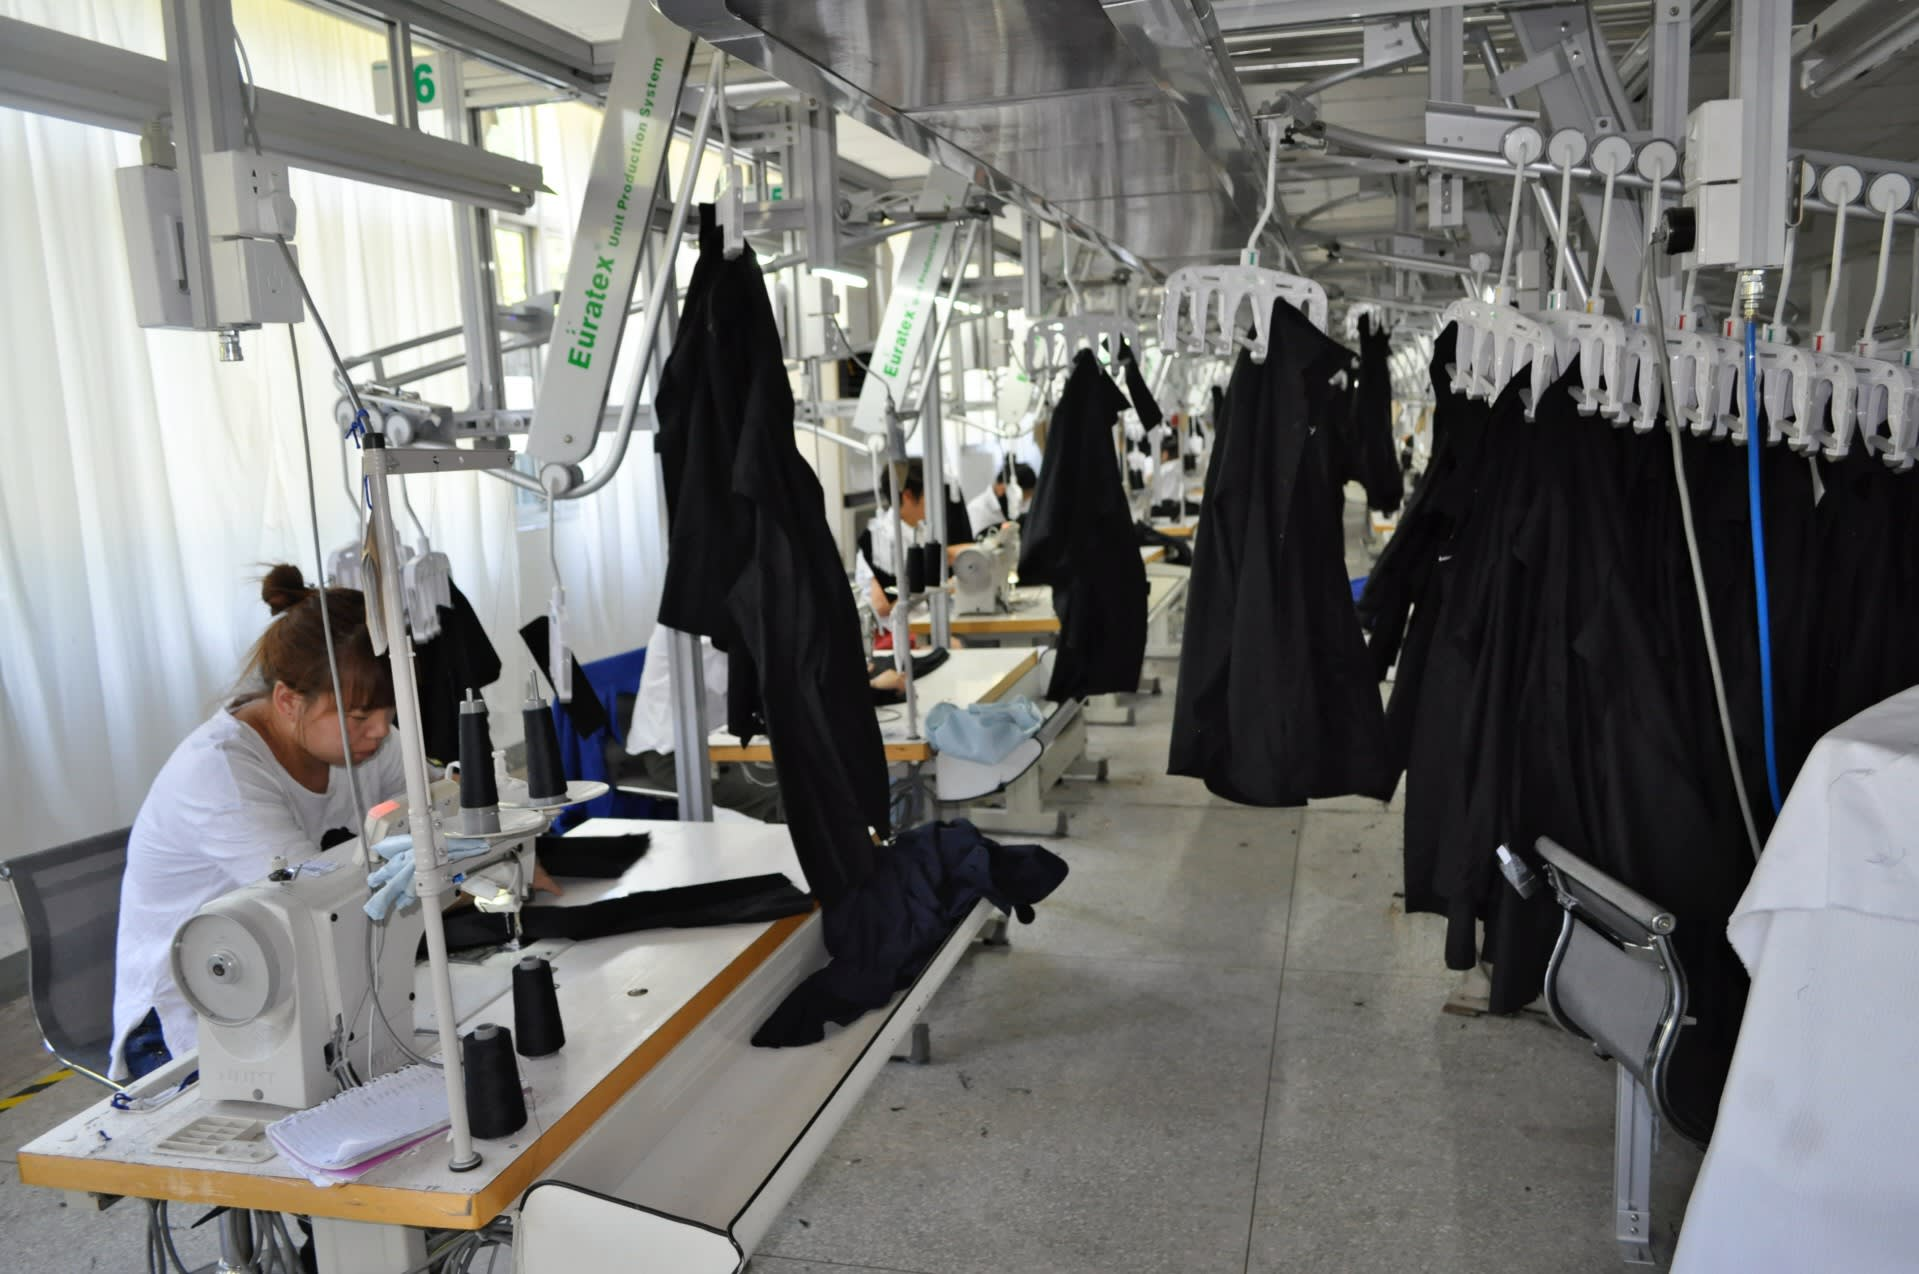 clothing manufacturers overseas i need a clothing manufacturer